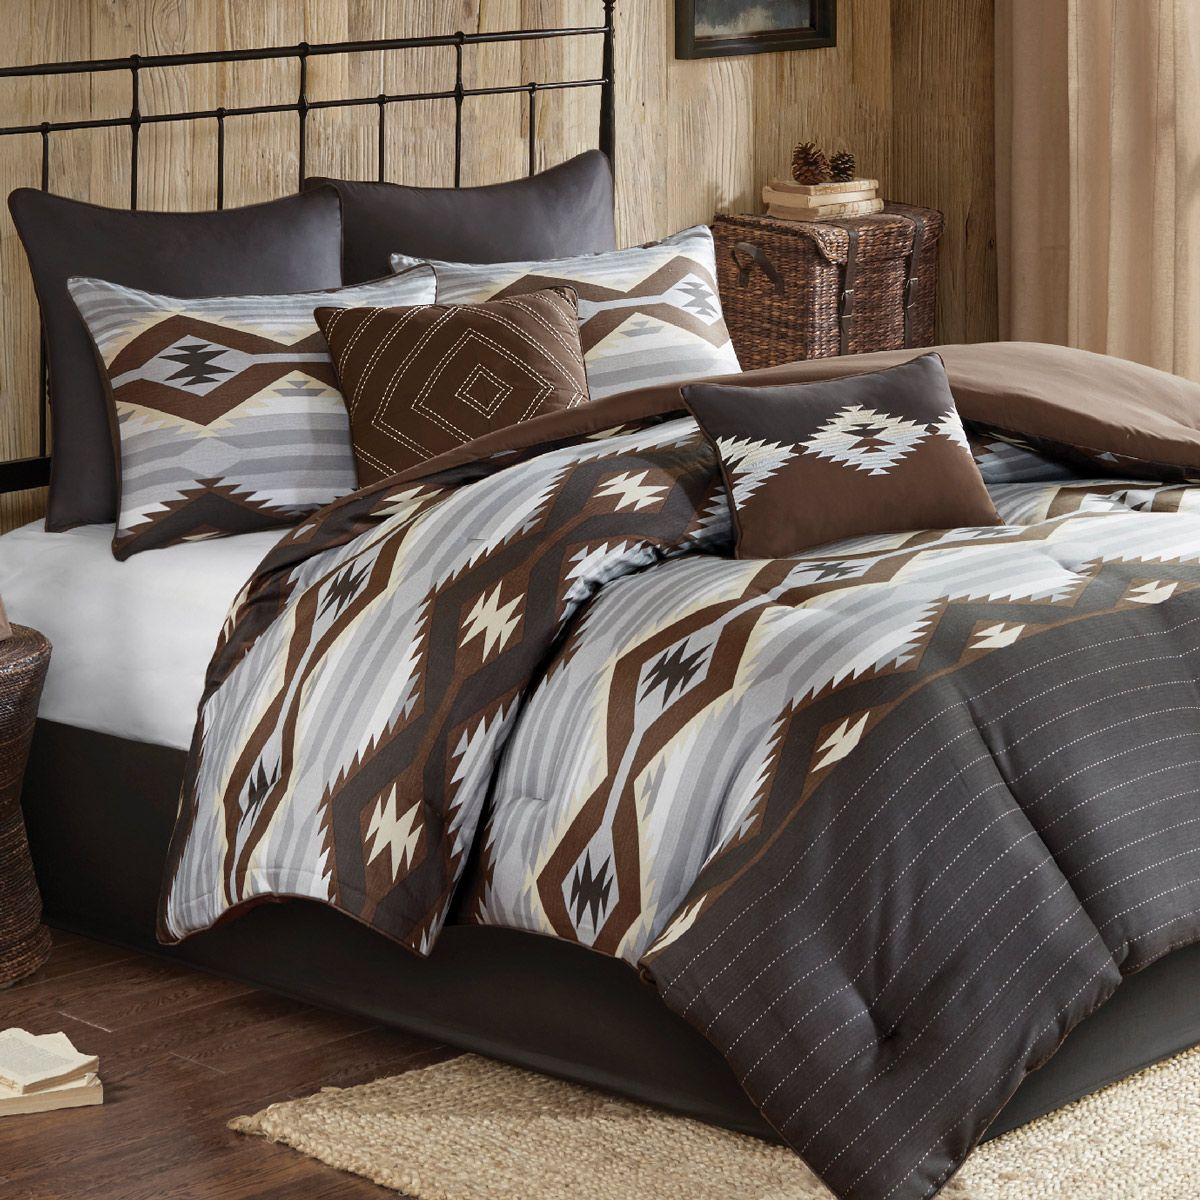 Slate River Oversized Bed Set - Twin